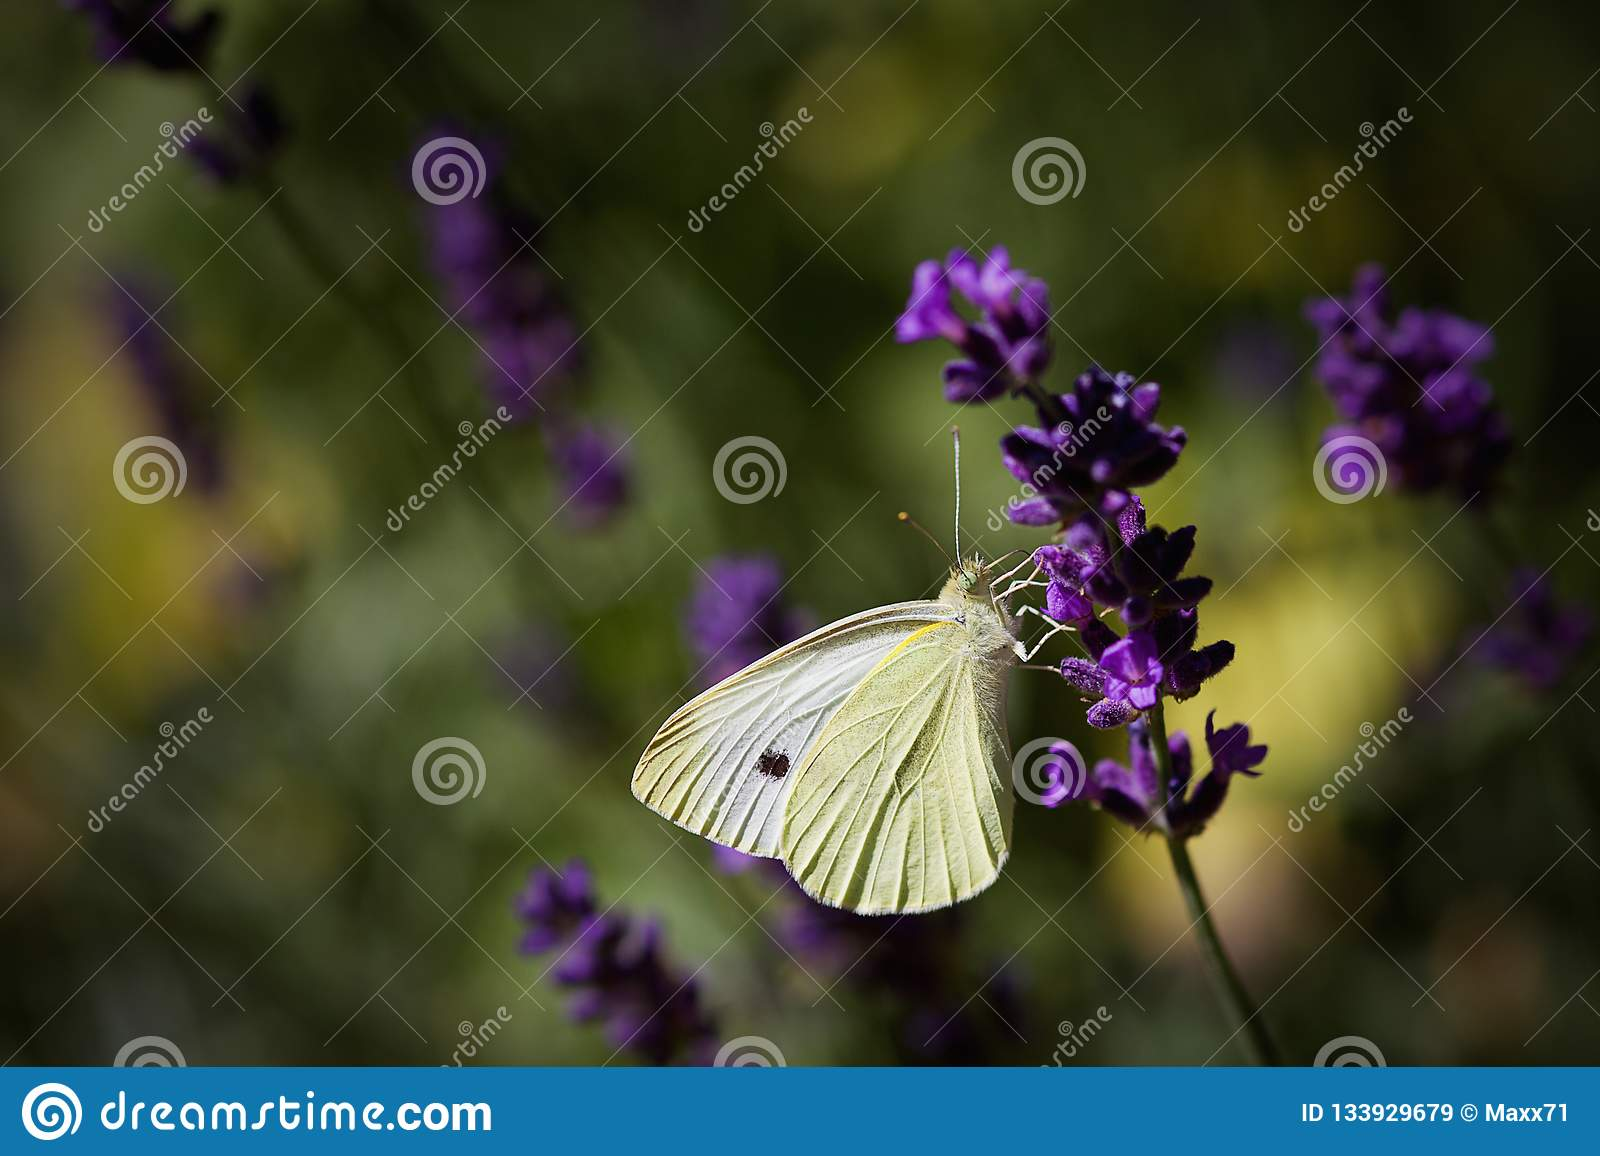 Small White Butterfly Sitting and Feeding on a Lavender Flower